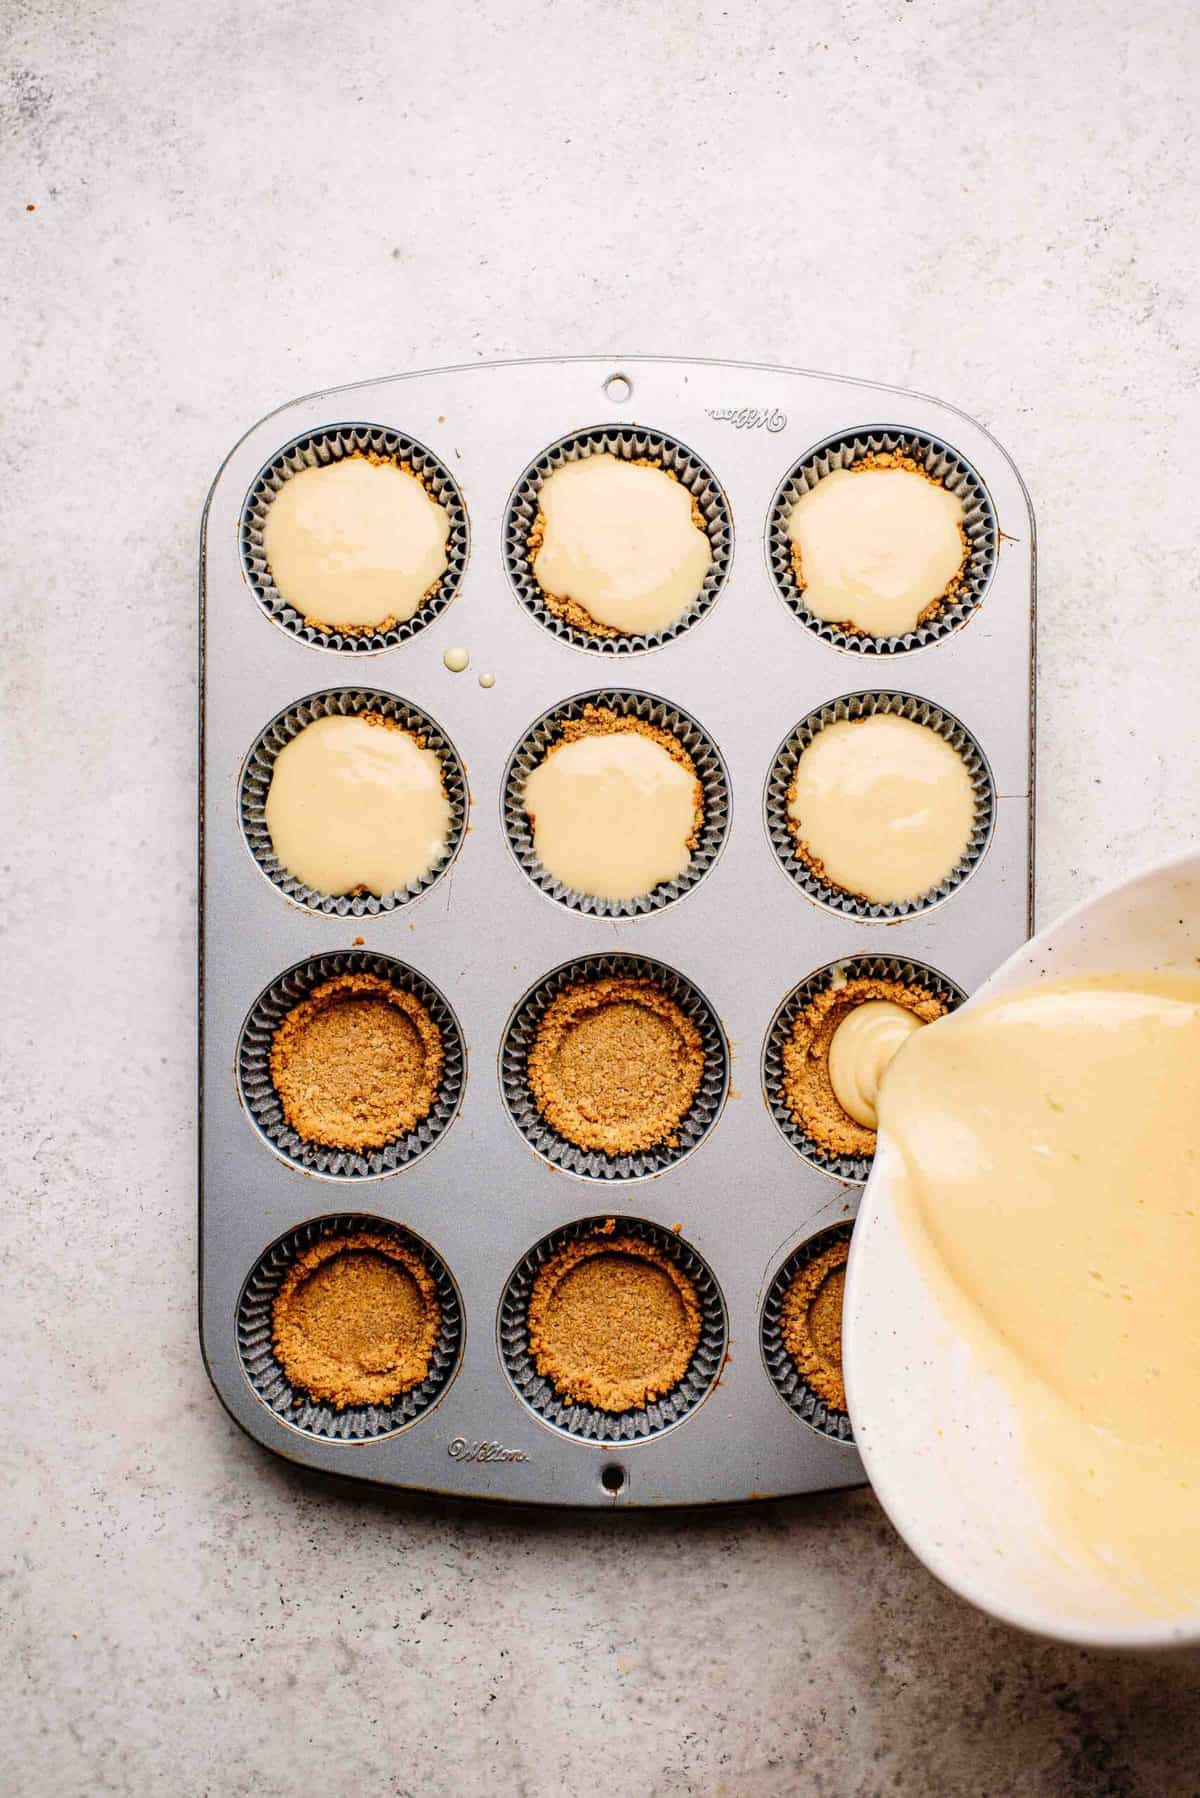 Key lime pie filling poured into mini graham cracker crusts.